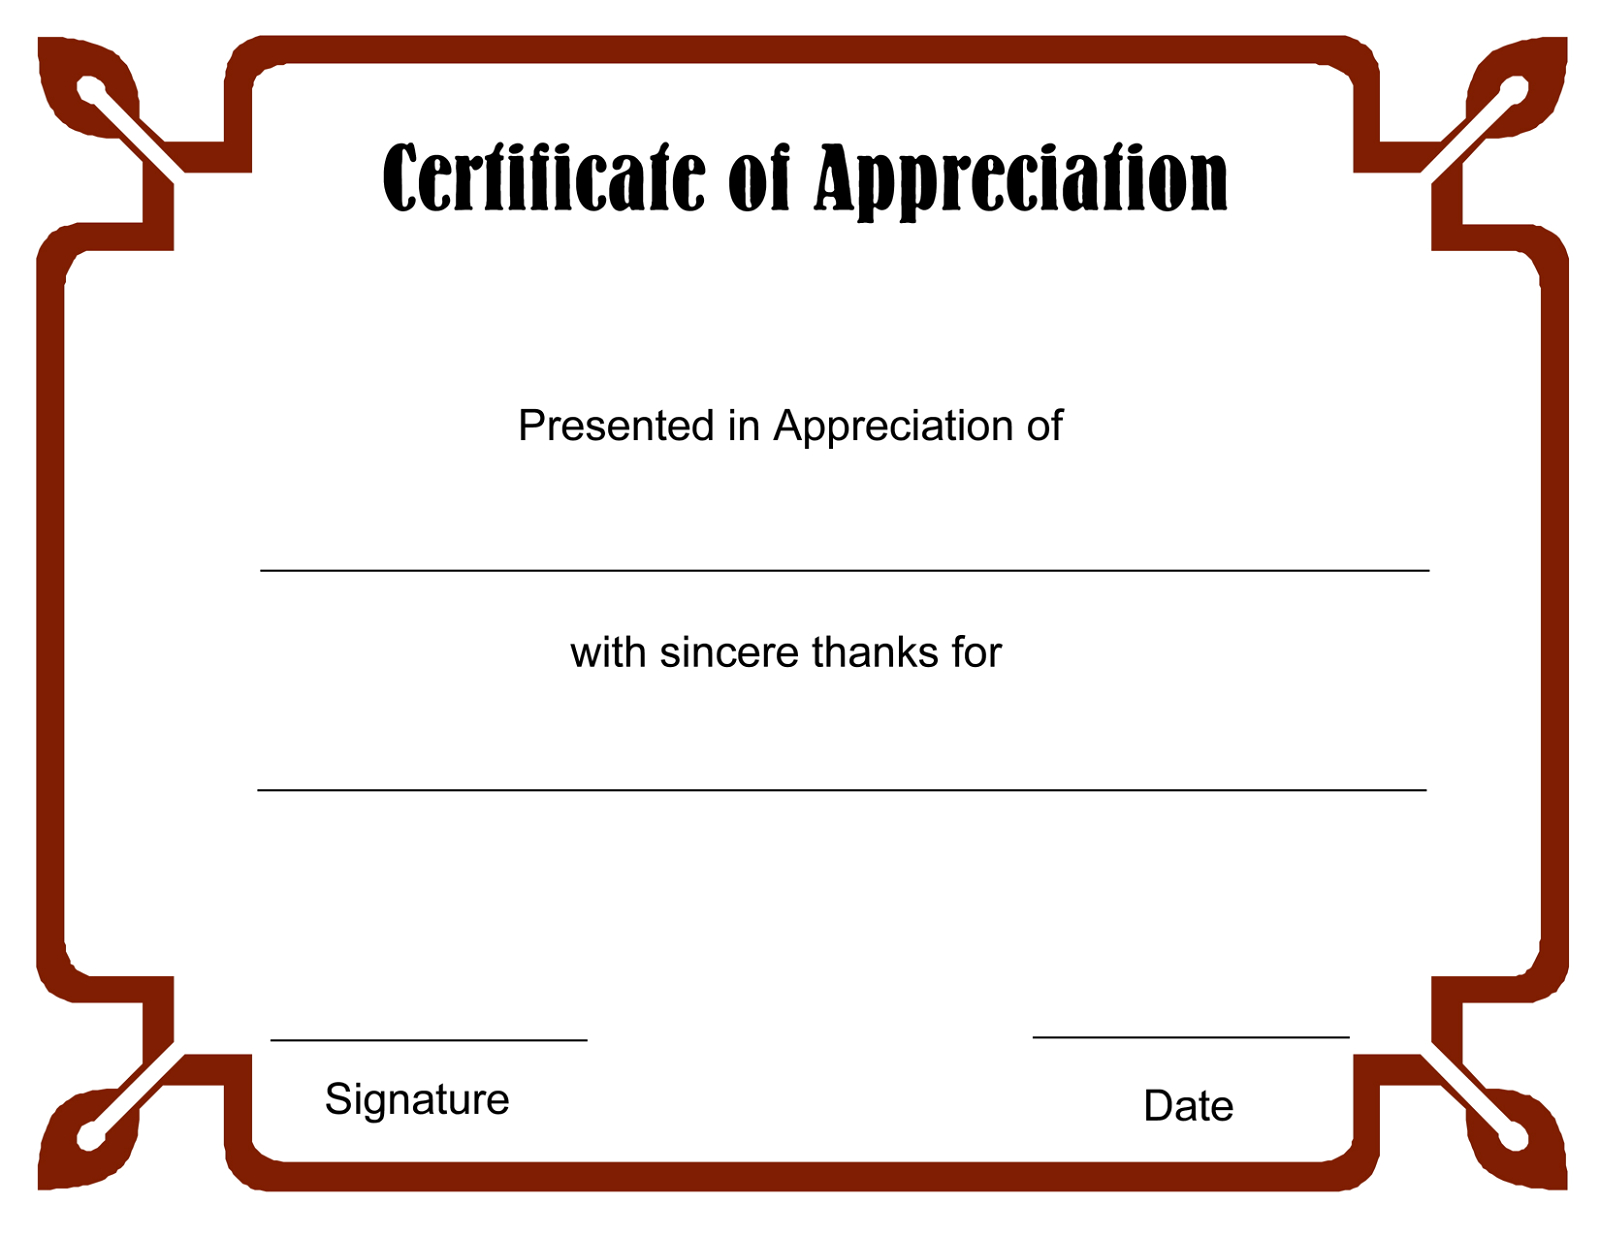 Blank Certificate Templates To Print | Blank Certificate Templates - Free Printable Soccer Certificate Templates